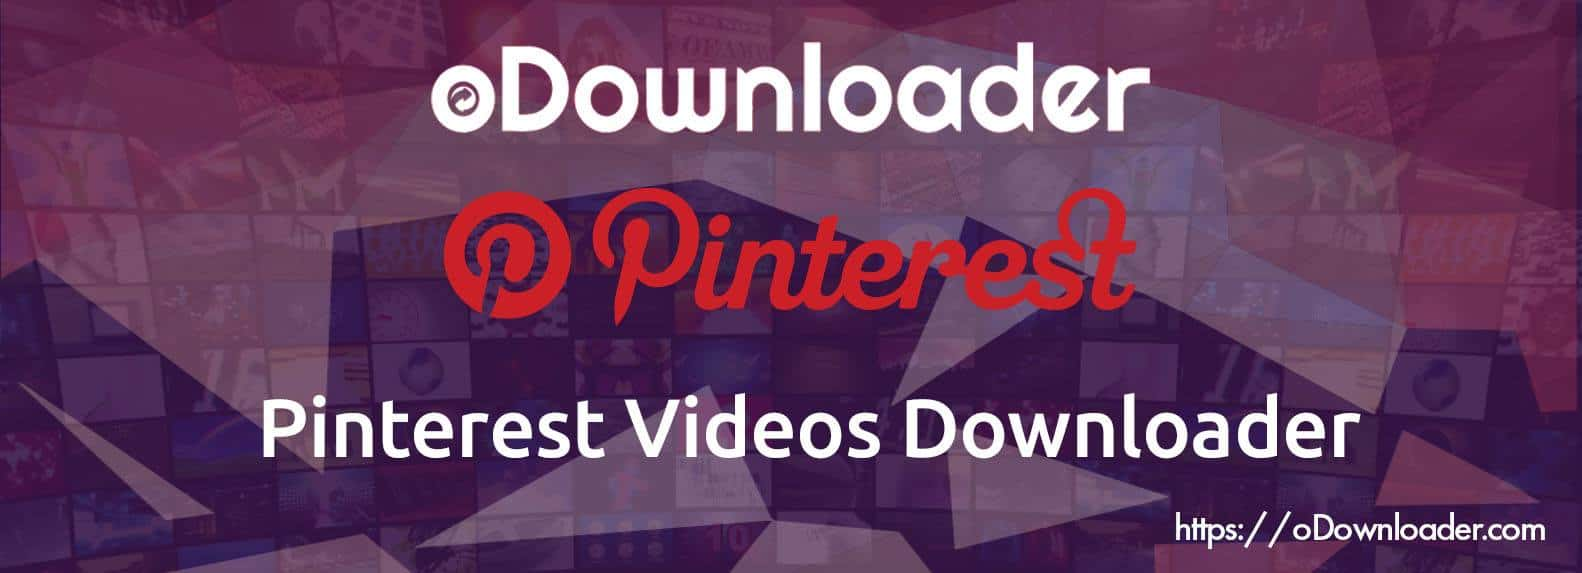 Pinterest Video Downloader Online